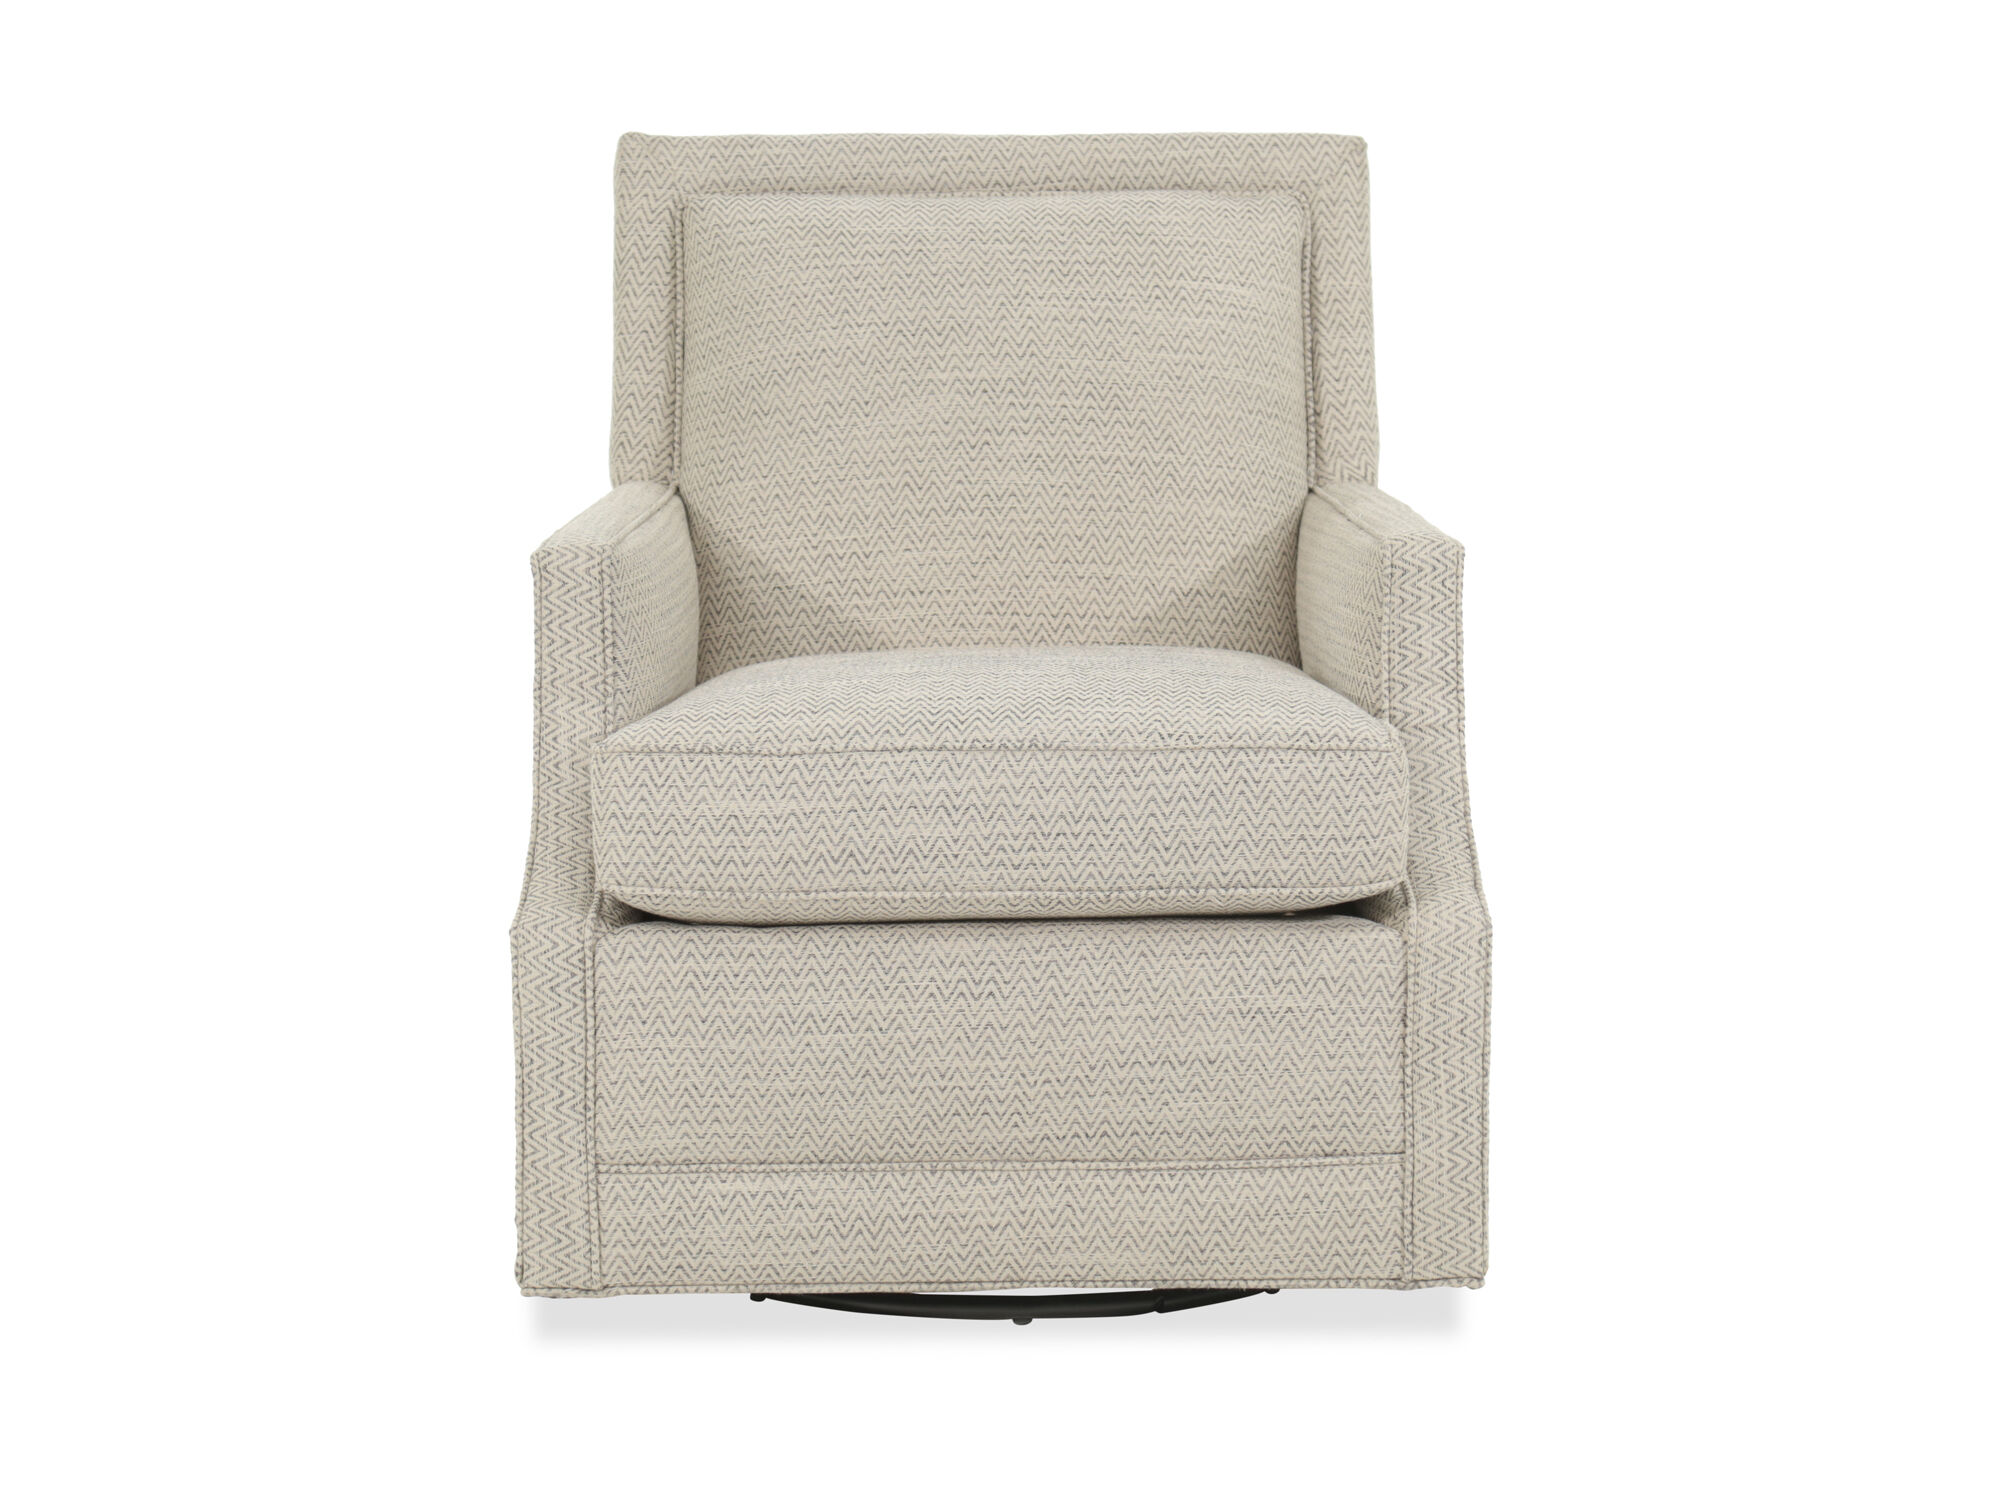 Images Wave Patterned Transitional 27.5u0026quot; Swivel Glider Chair In Cream